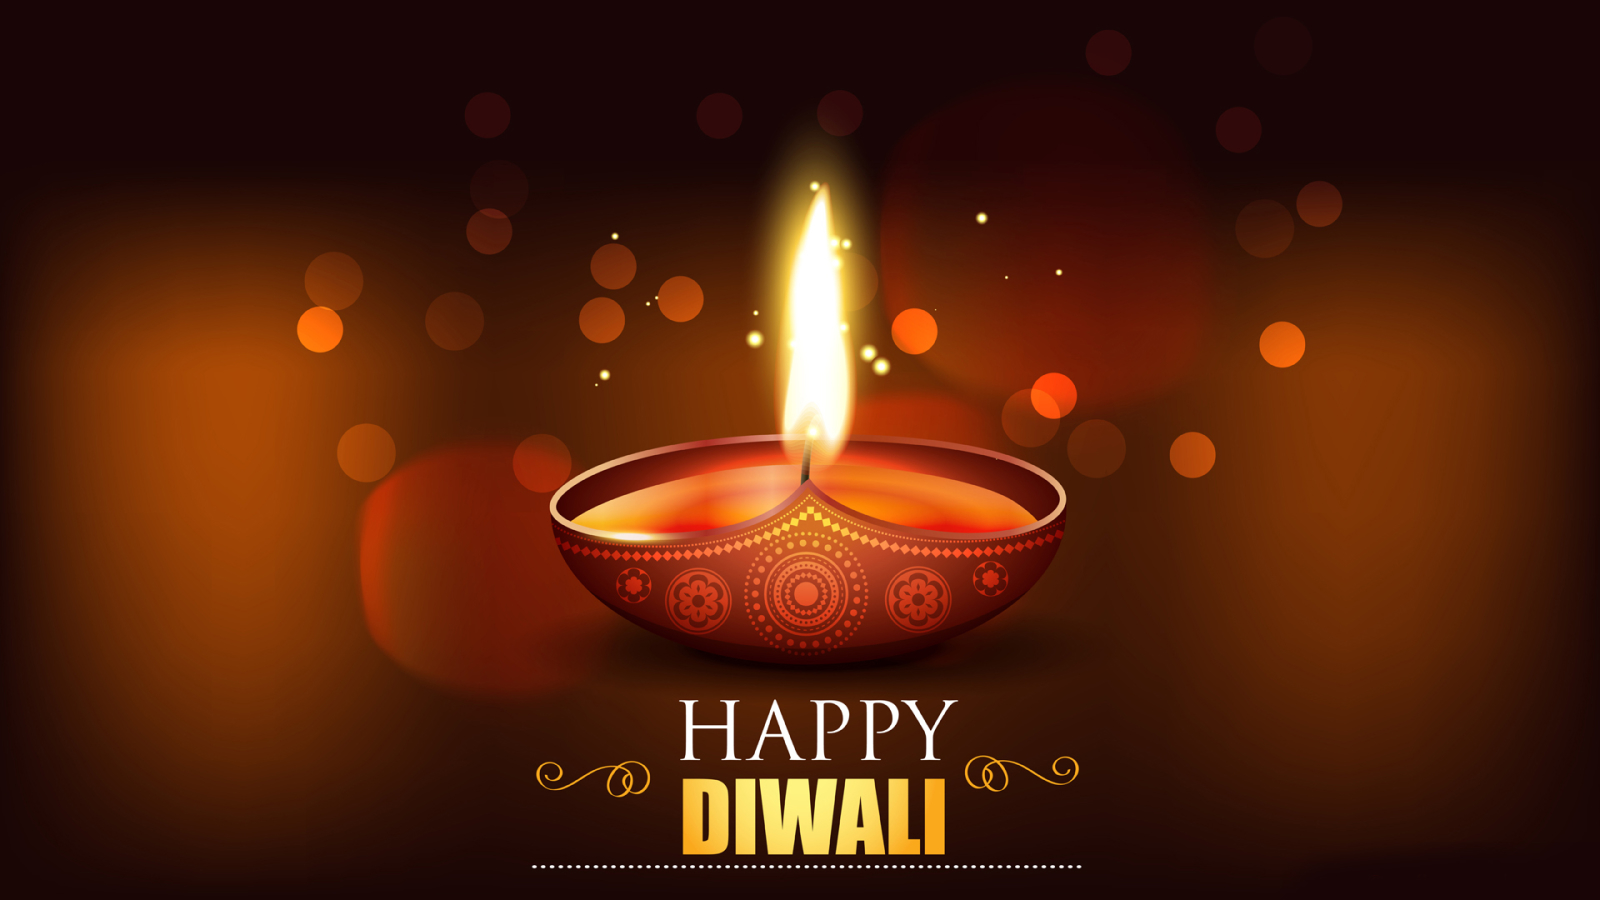 Happy Diwali 2020 Wallpaper in 1600x900 Resolution